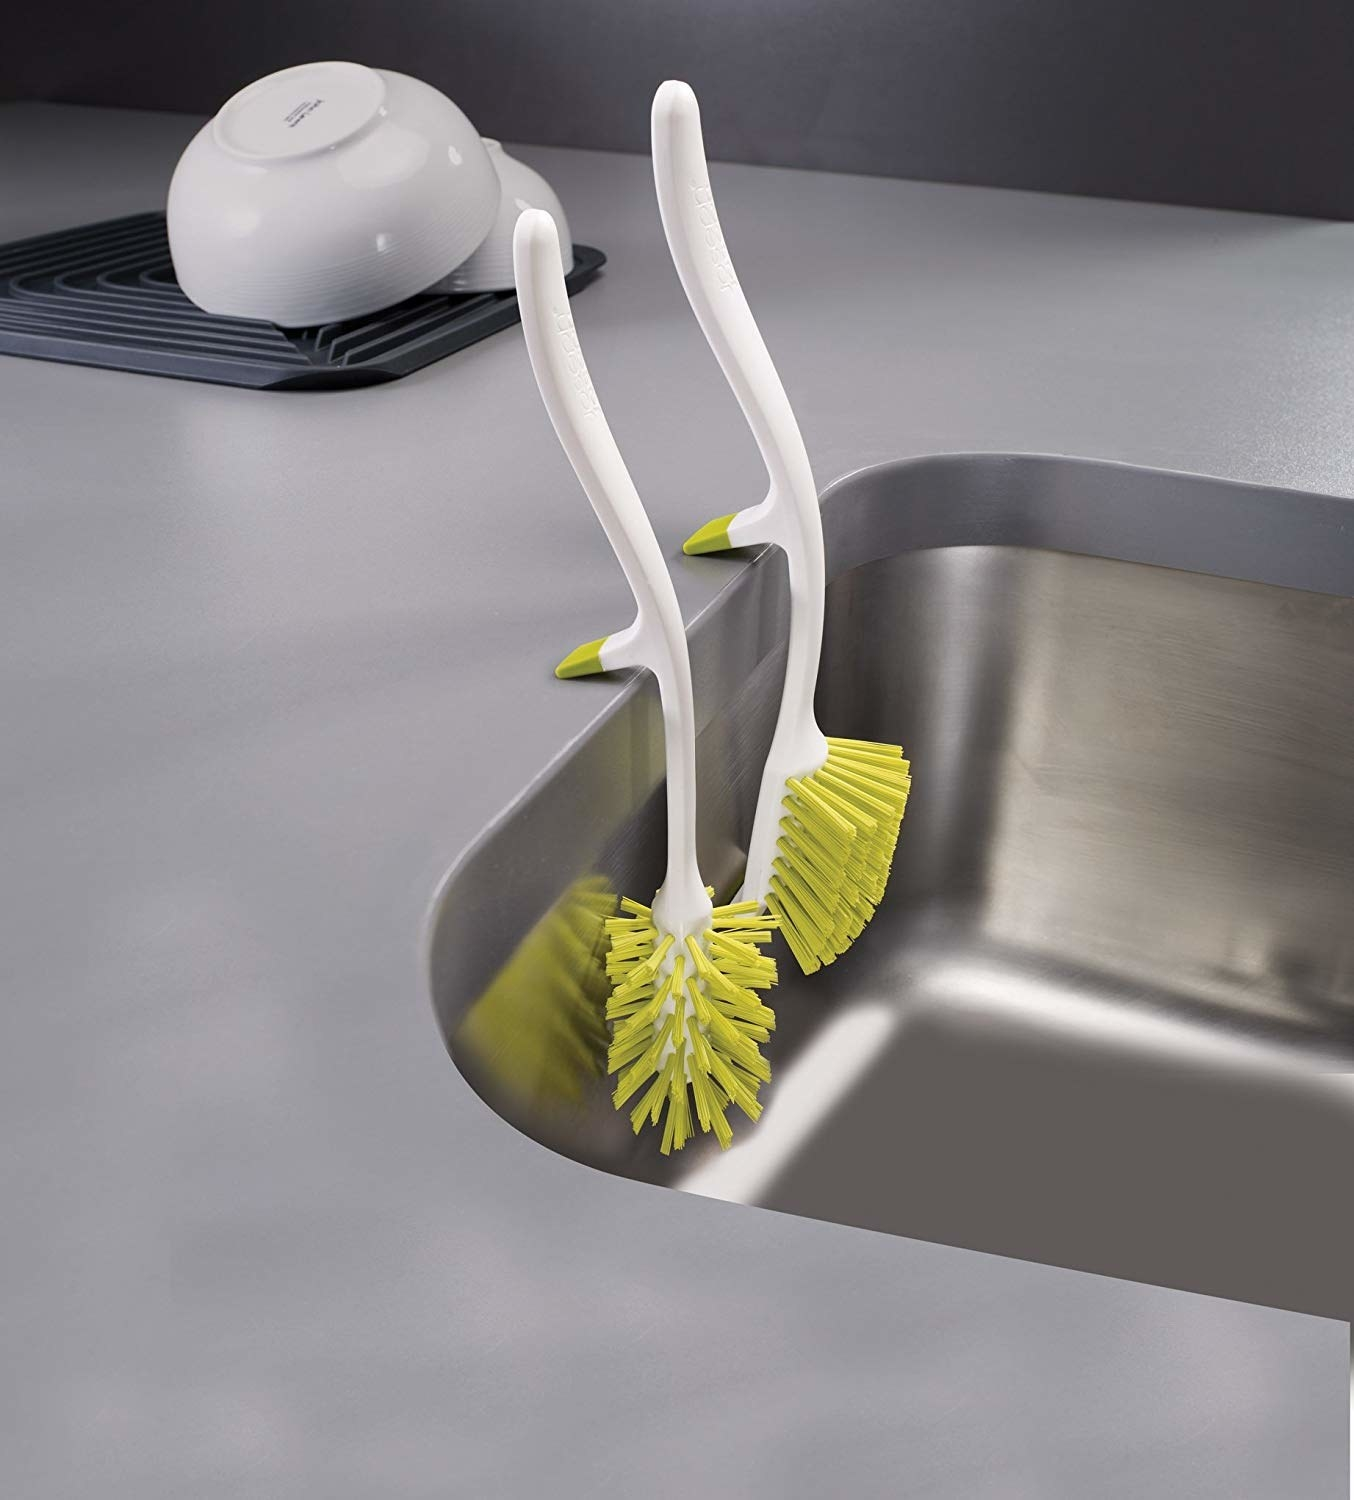 Two brushes hanging from side of sink